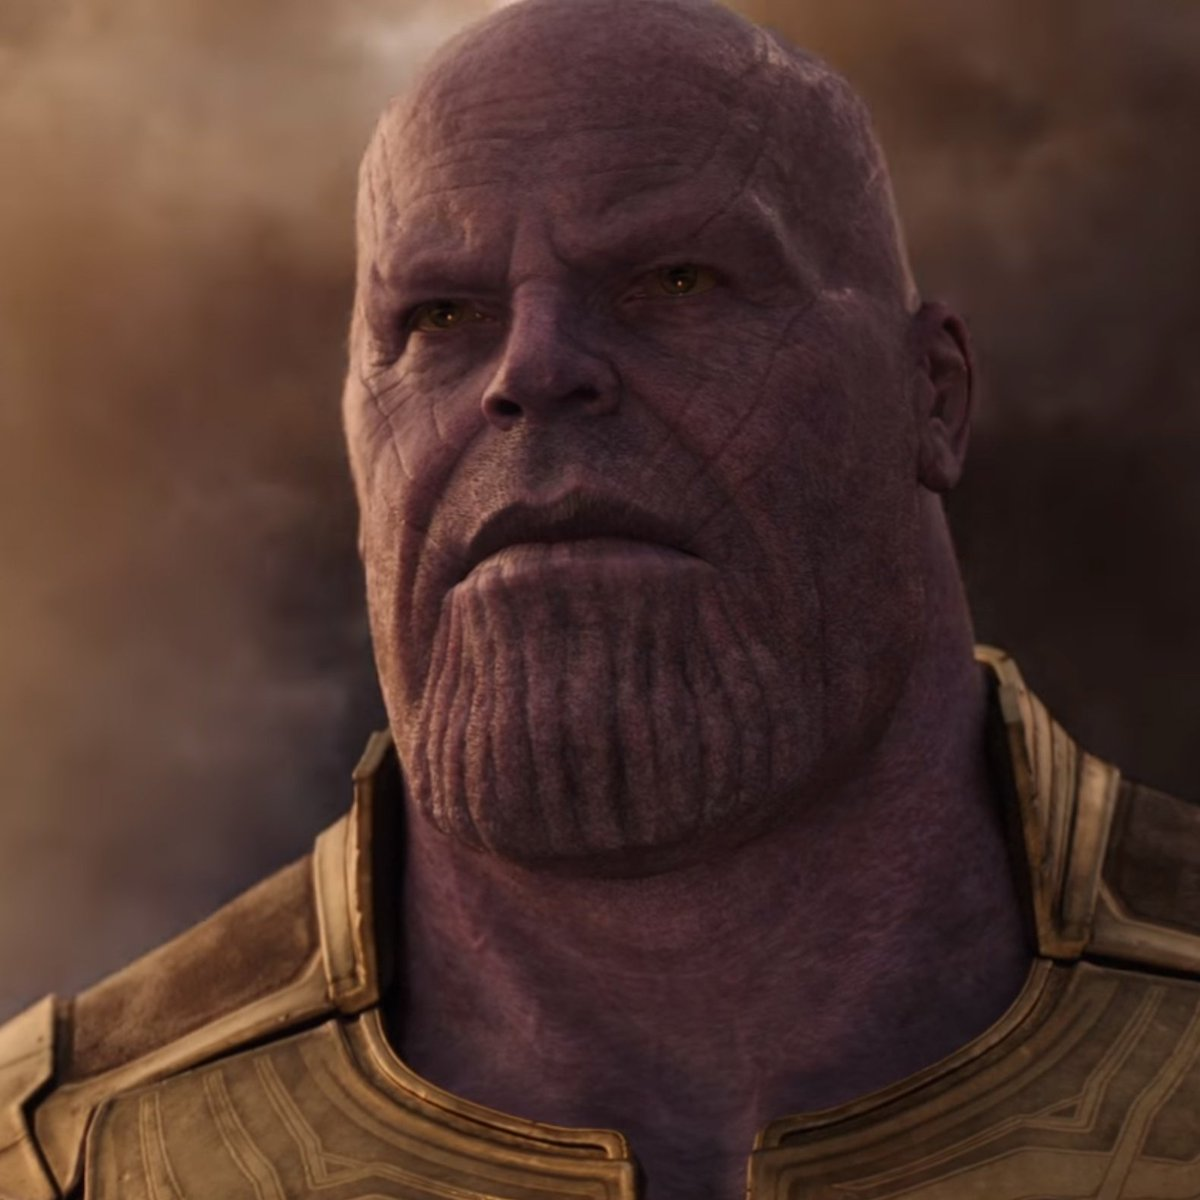 shoutout to marvelstudios for finally representing the angry faced giant bald block head demographic on screen i guess i know what my halloween costume